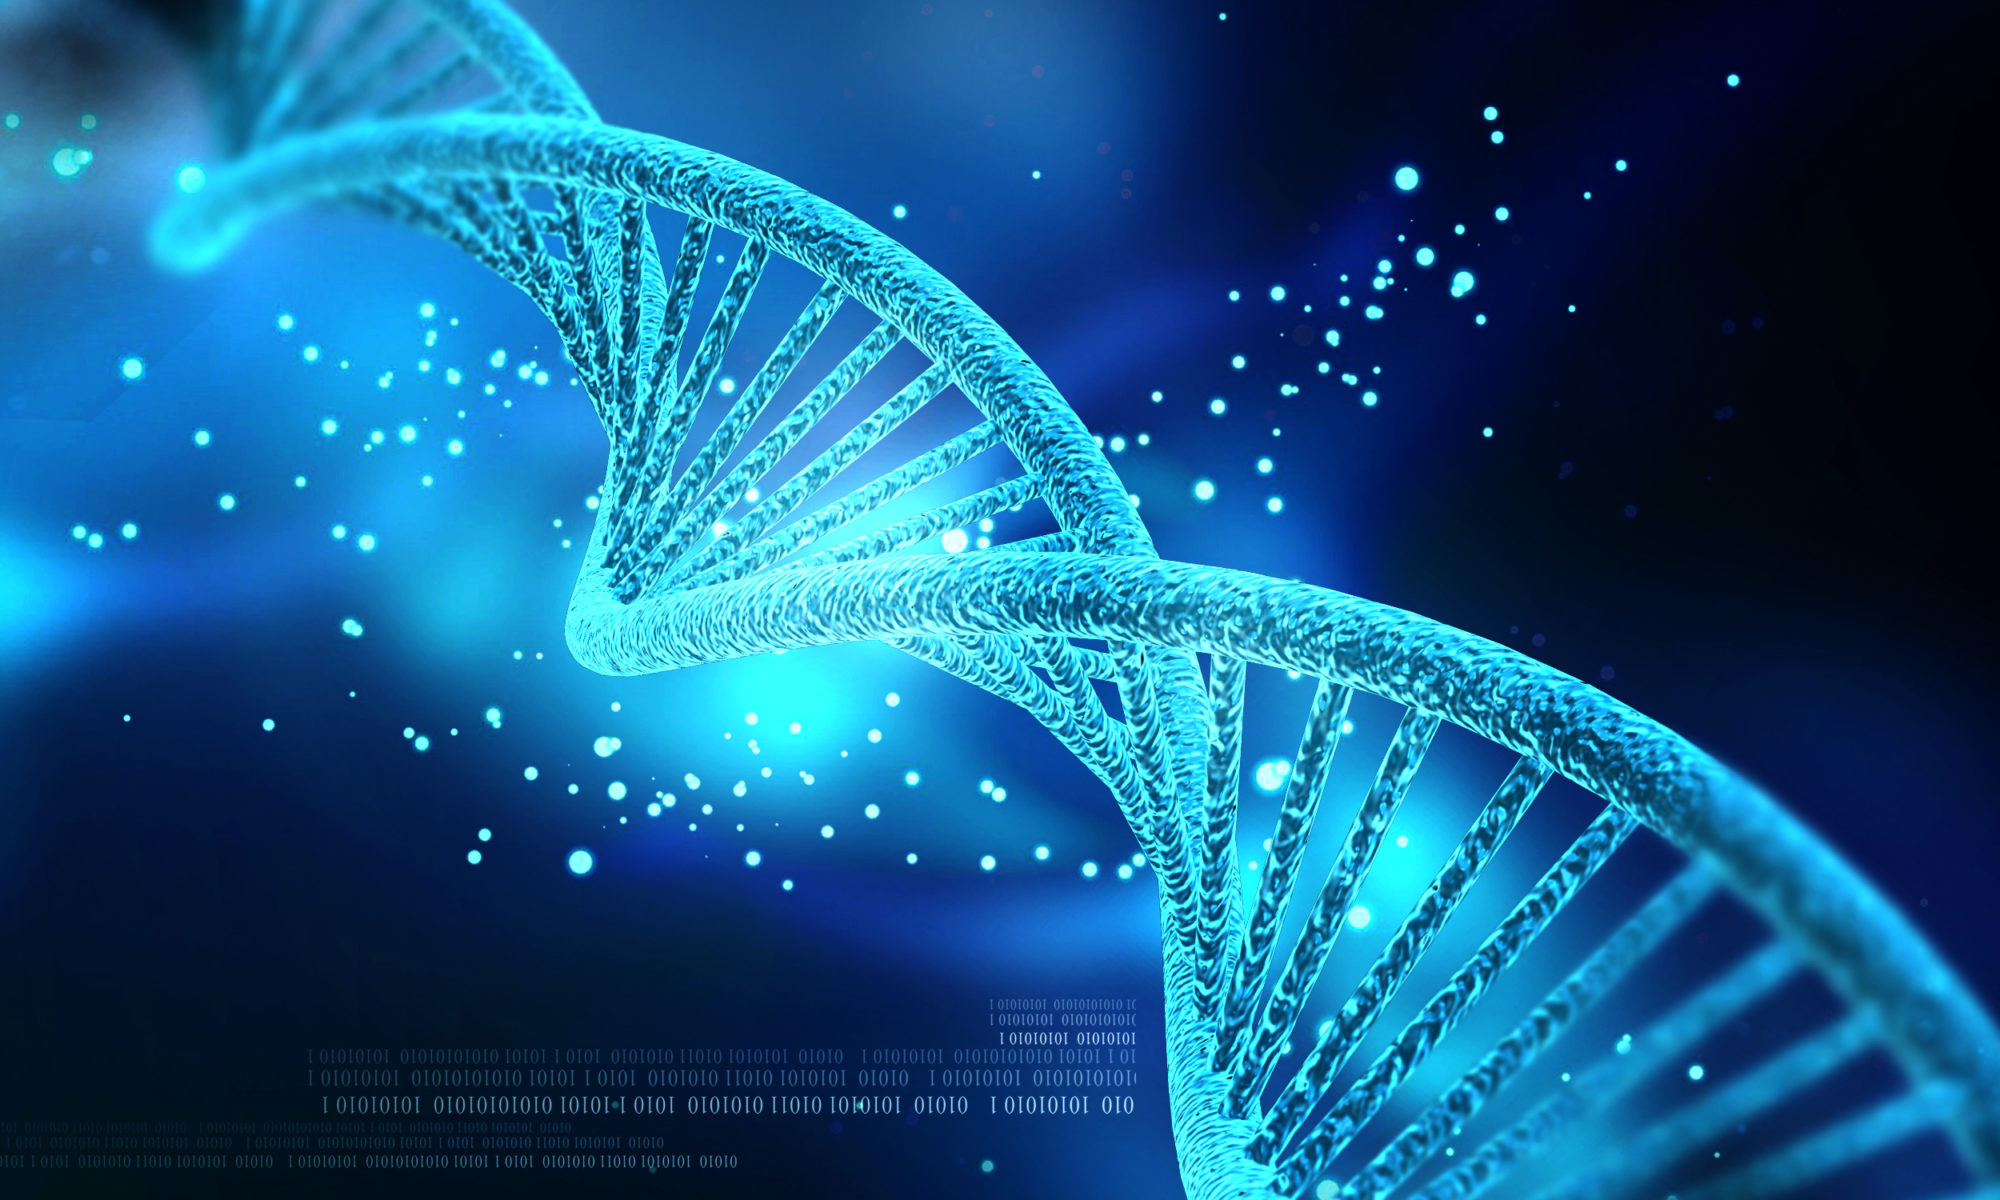 Re-connect with the core DNA